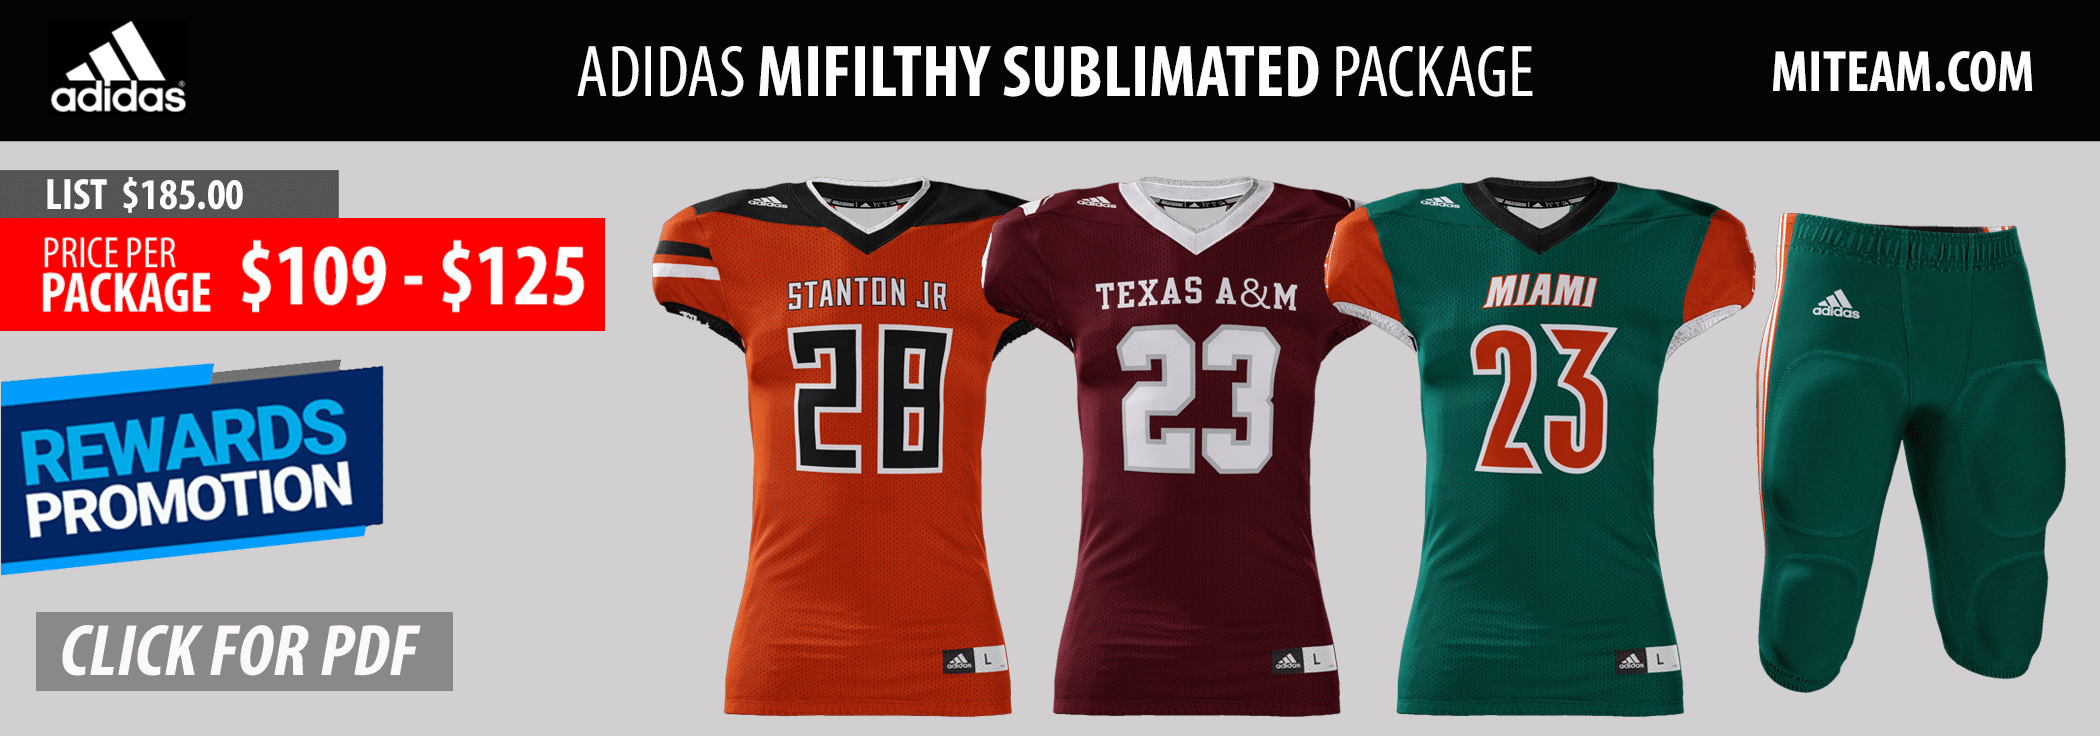 Adidas Mifilthy Quick Football Uniform Package